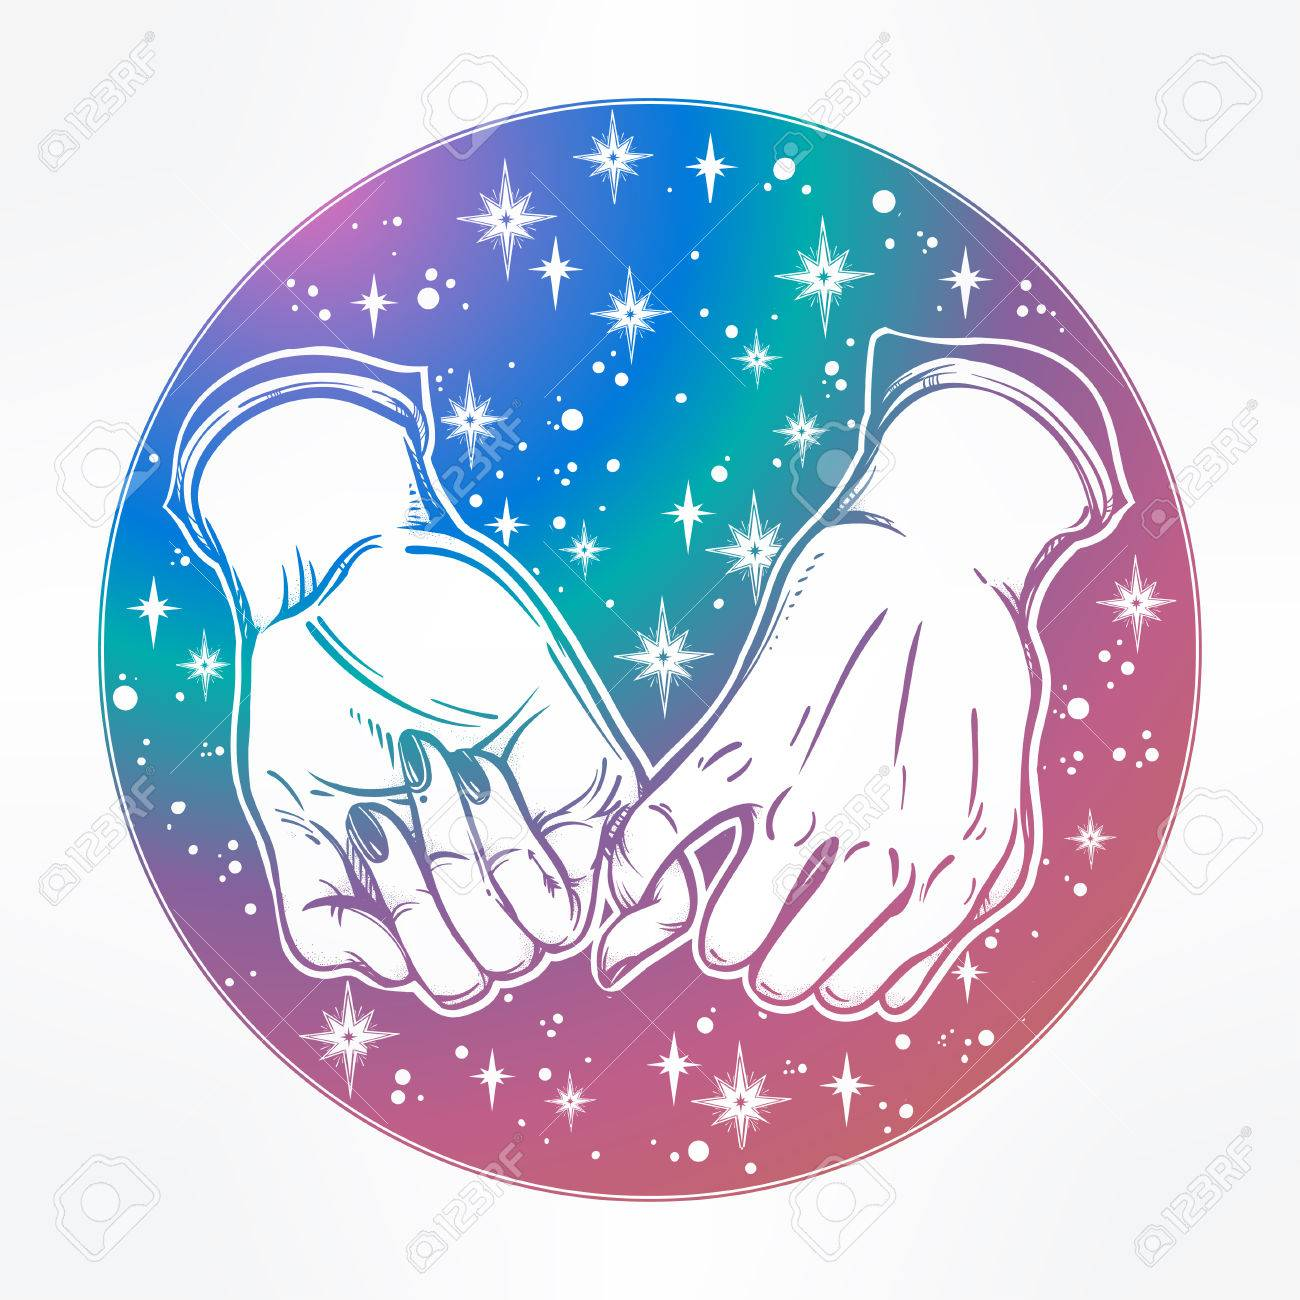 Pinky promise hand holding on the starry dreamy ethereal trendy friendship symbol for your use pinky promise hand holding on the starry dreamy ethereal background vector illustration isolated buycottarizona Choice Image